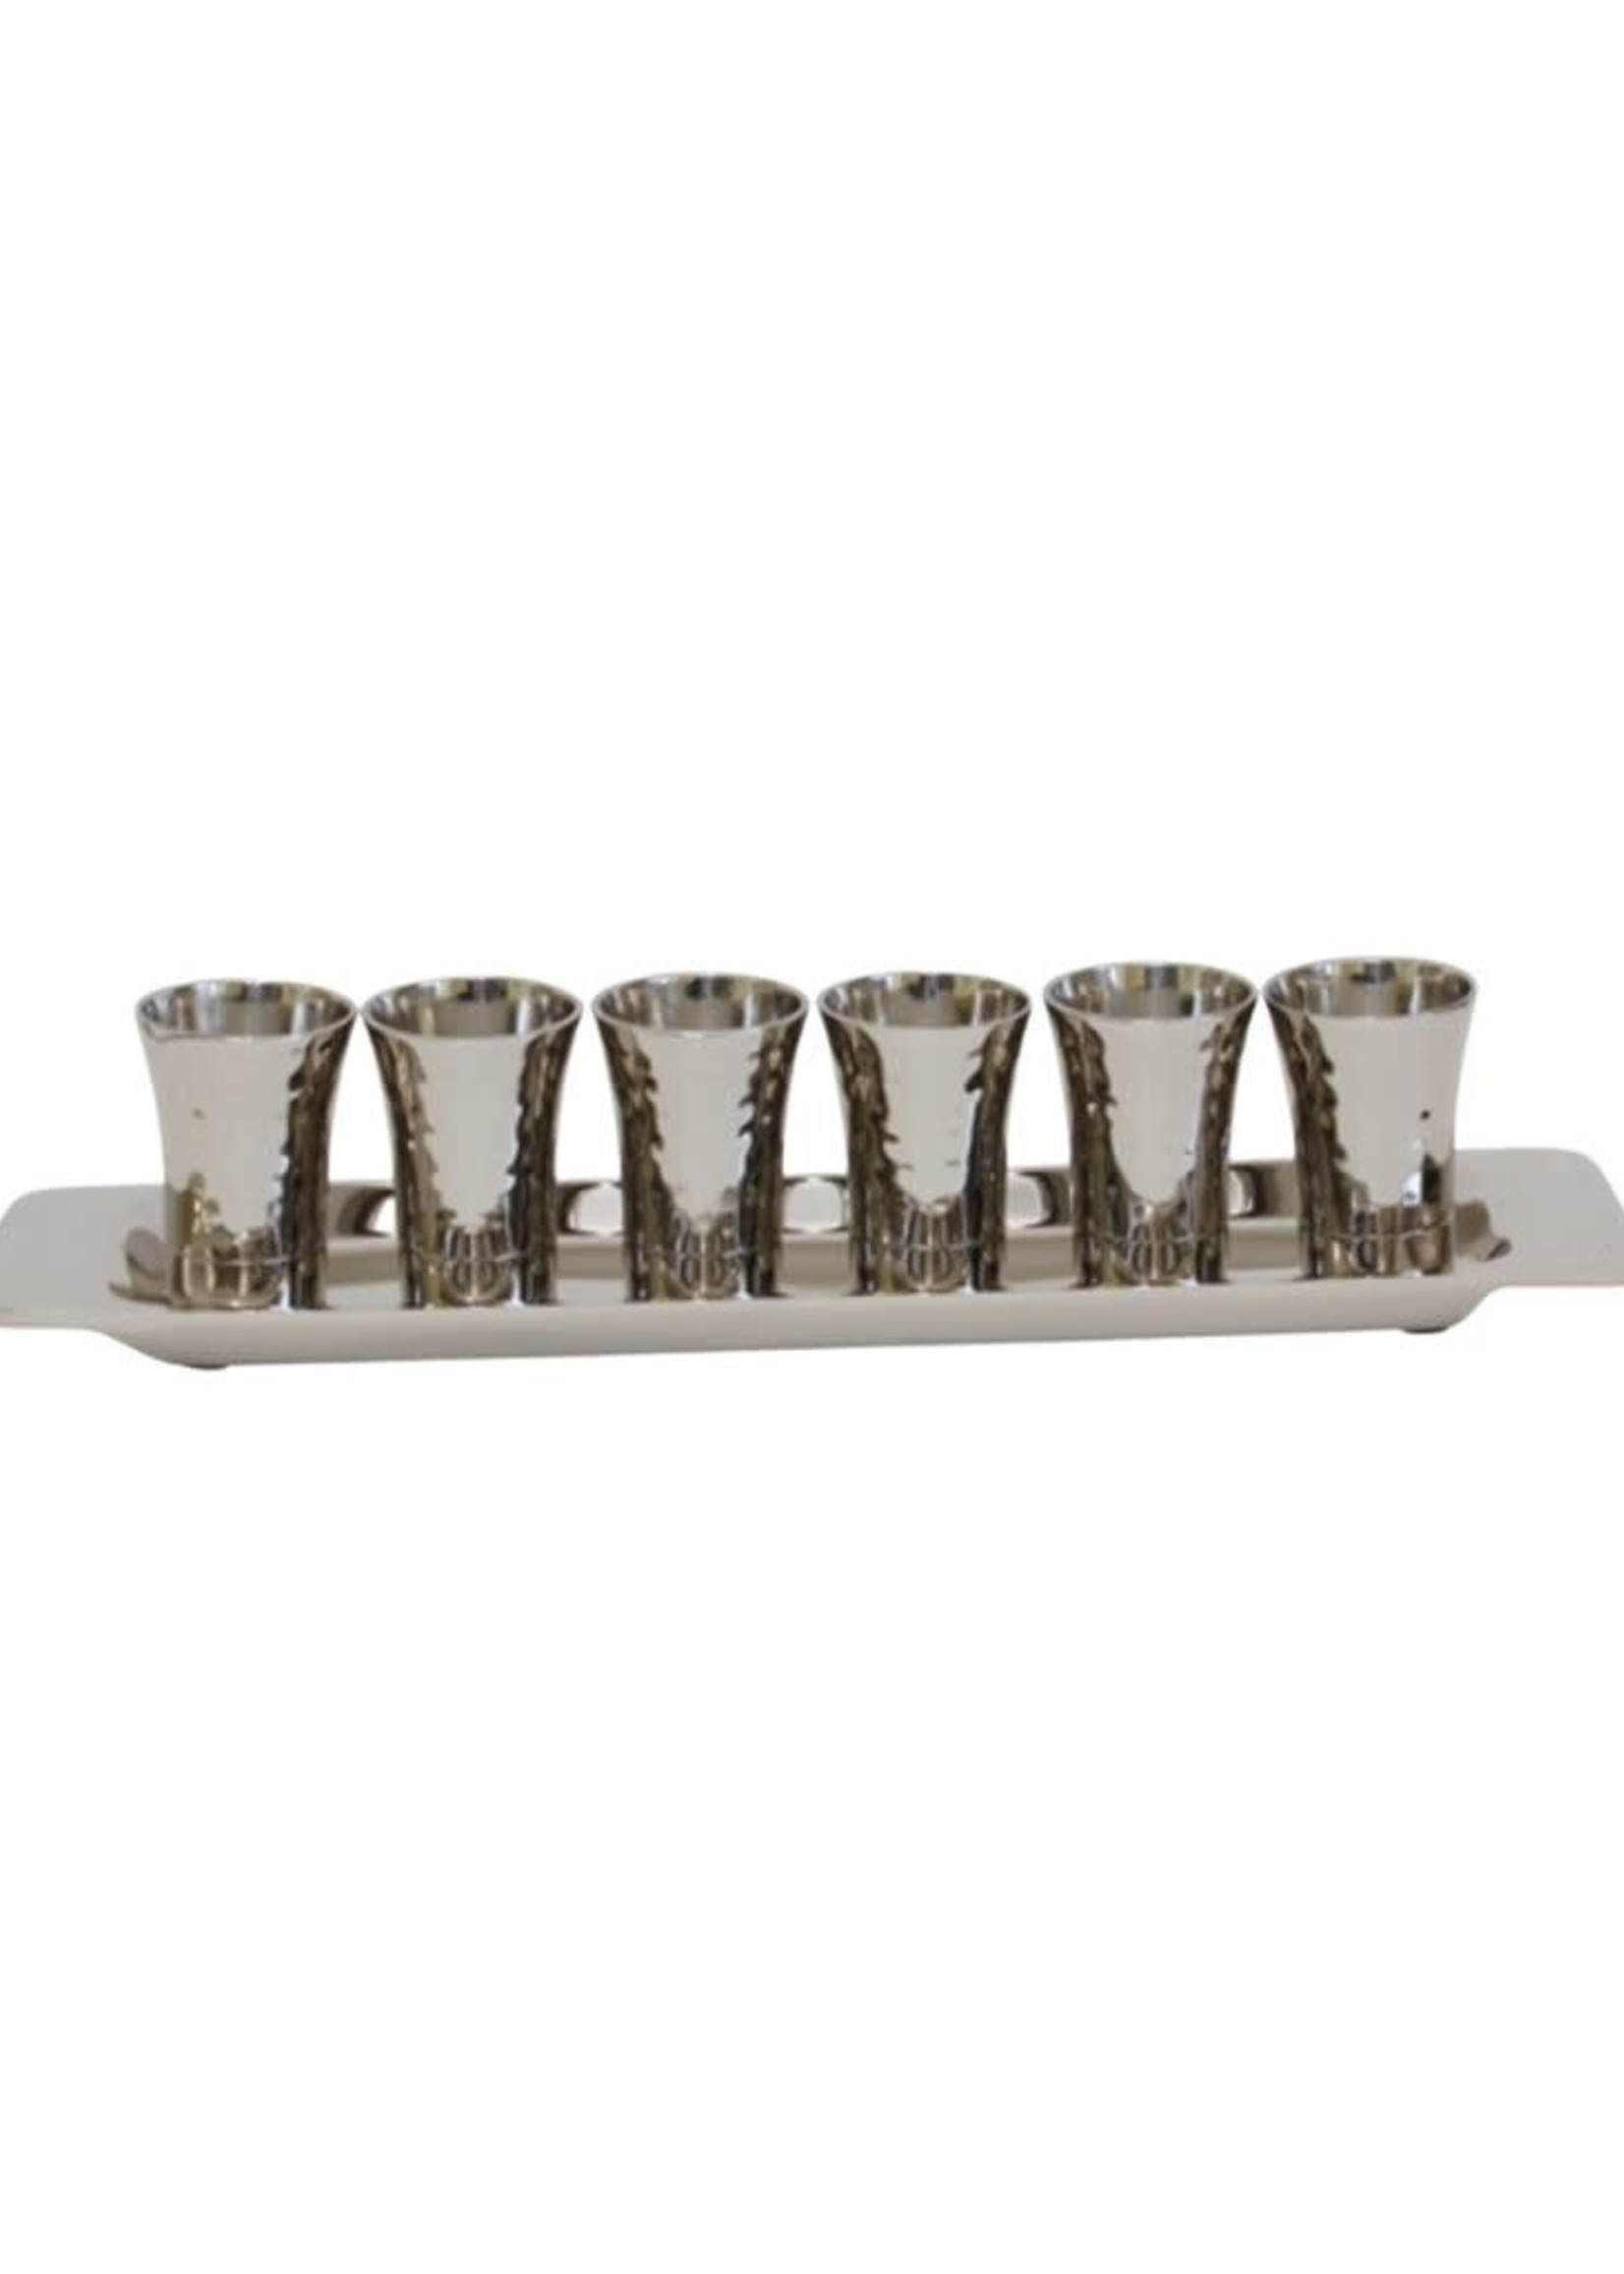 Emanuel Set of 6 Small Cups + Tray- Nickel